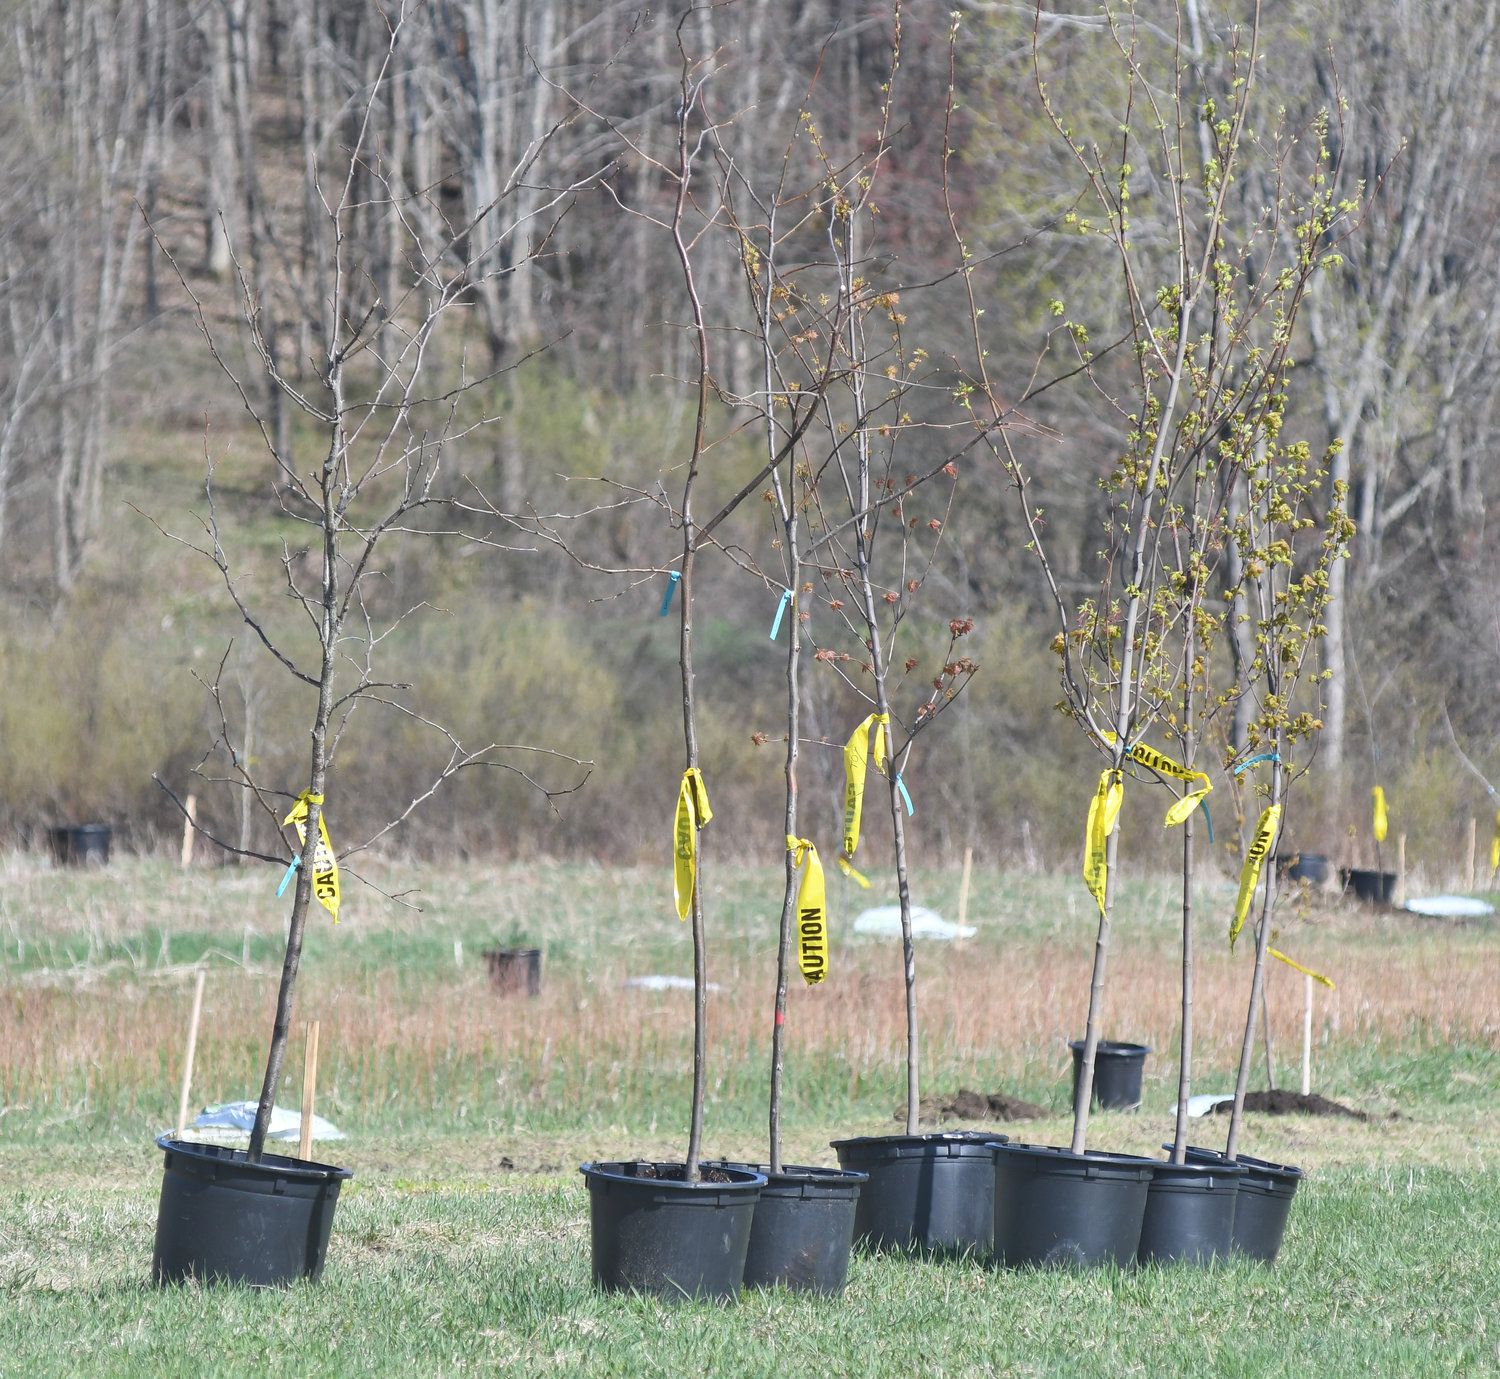 Trees ready to be planted in Floyd on a walking/nature trail that is being constructed. Locust, Red Maple, Oaks and Hawthorns are being planted along the trail.